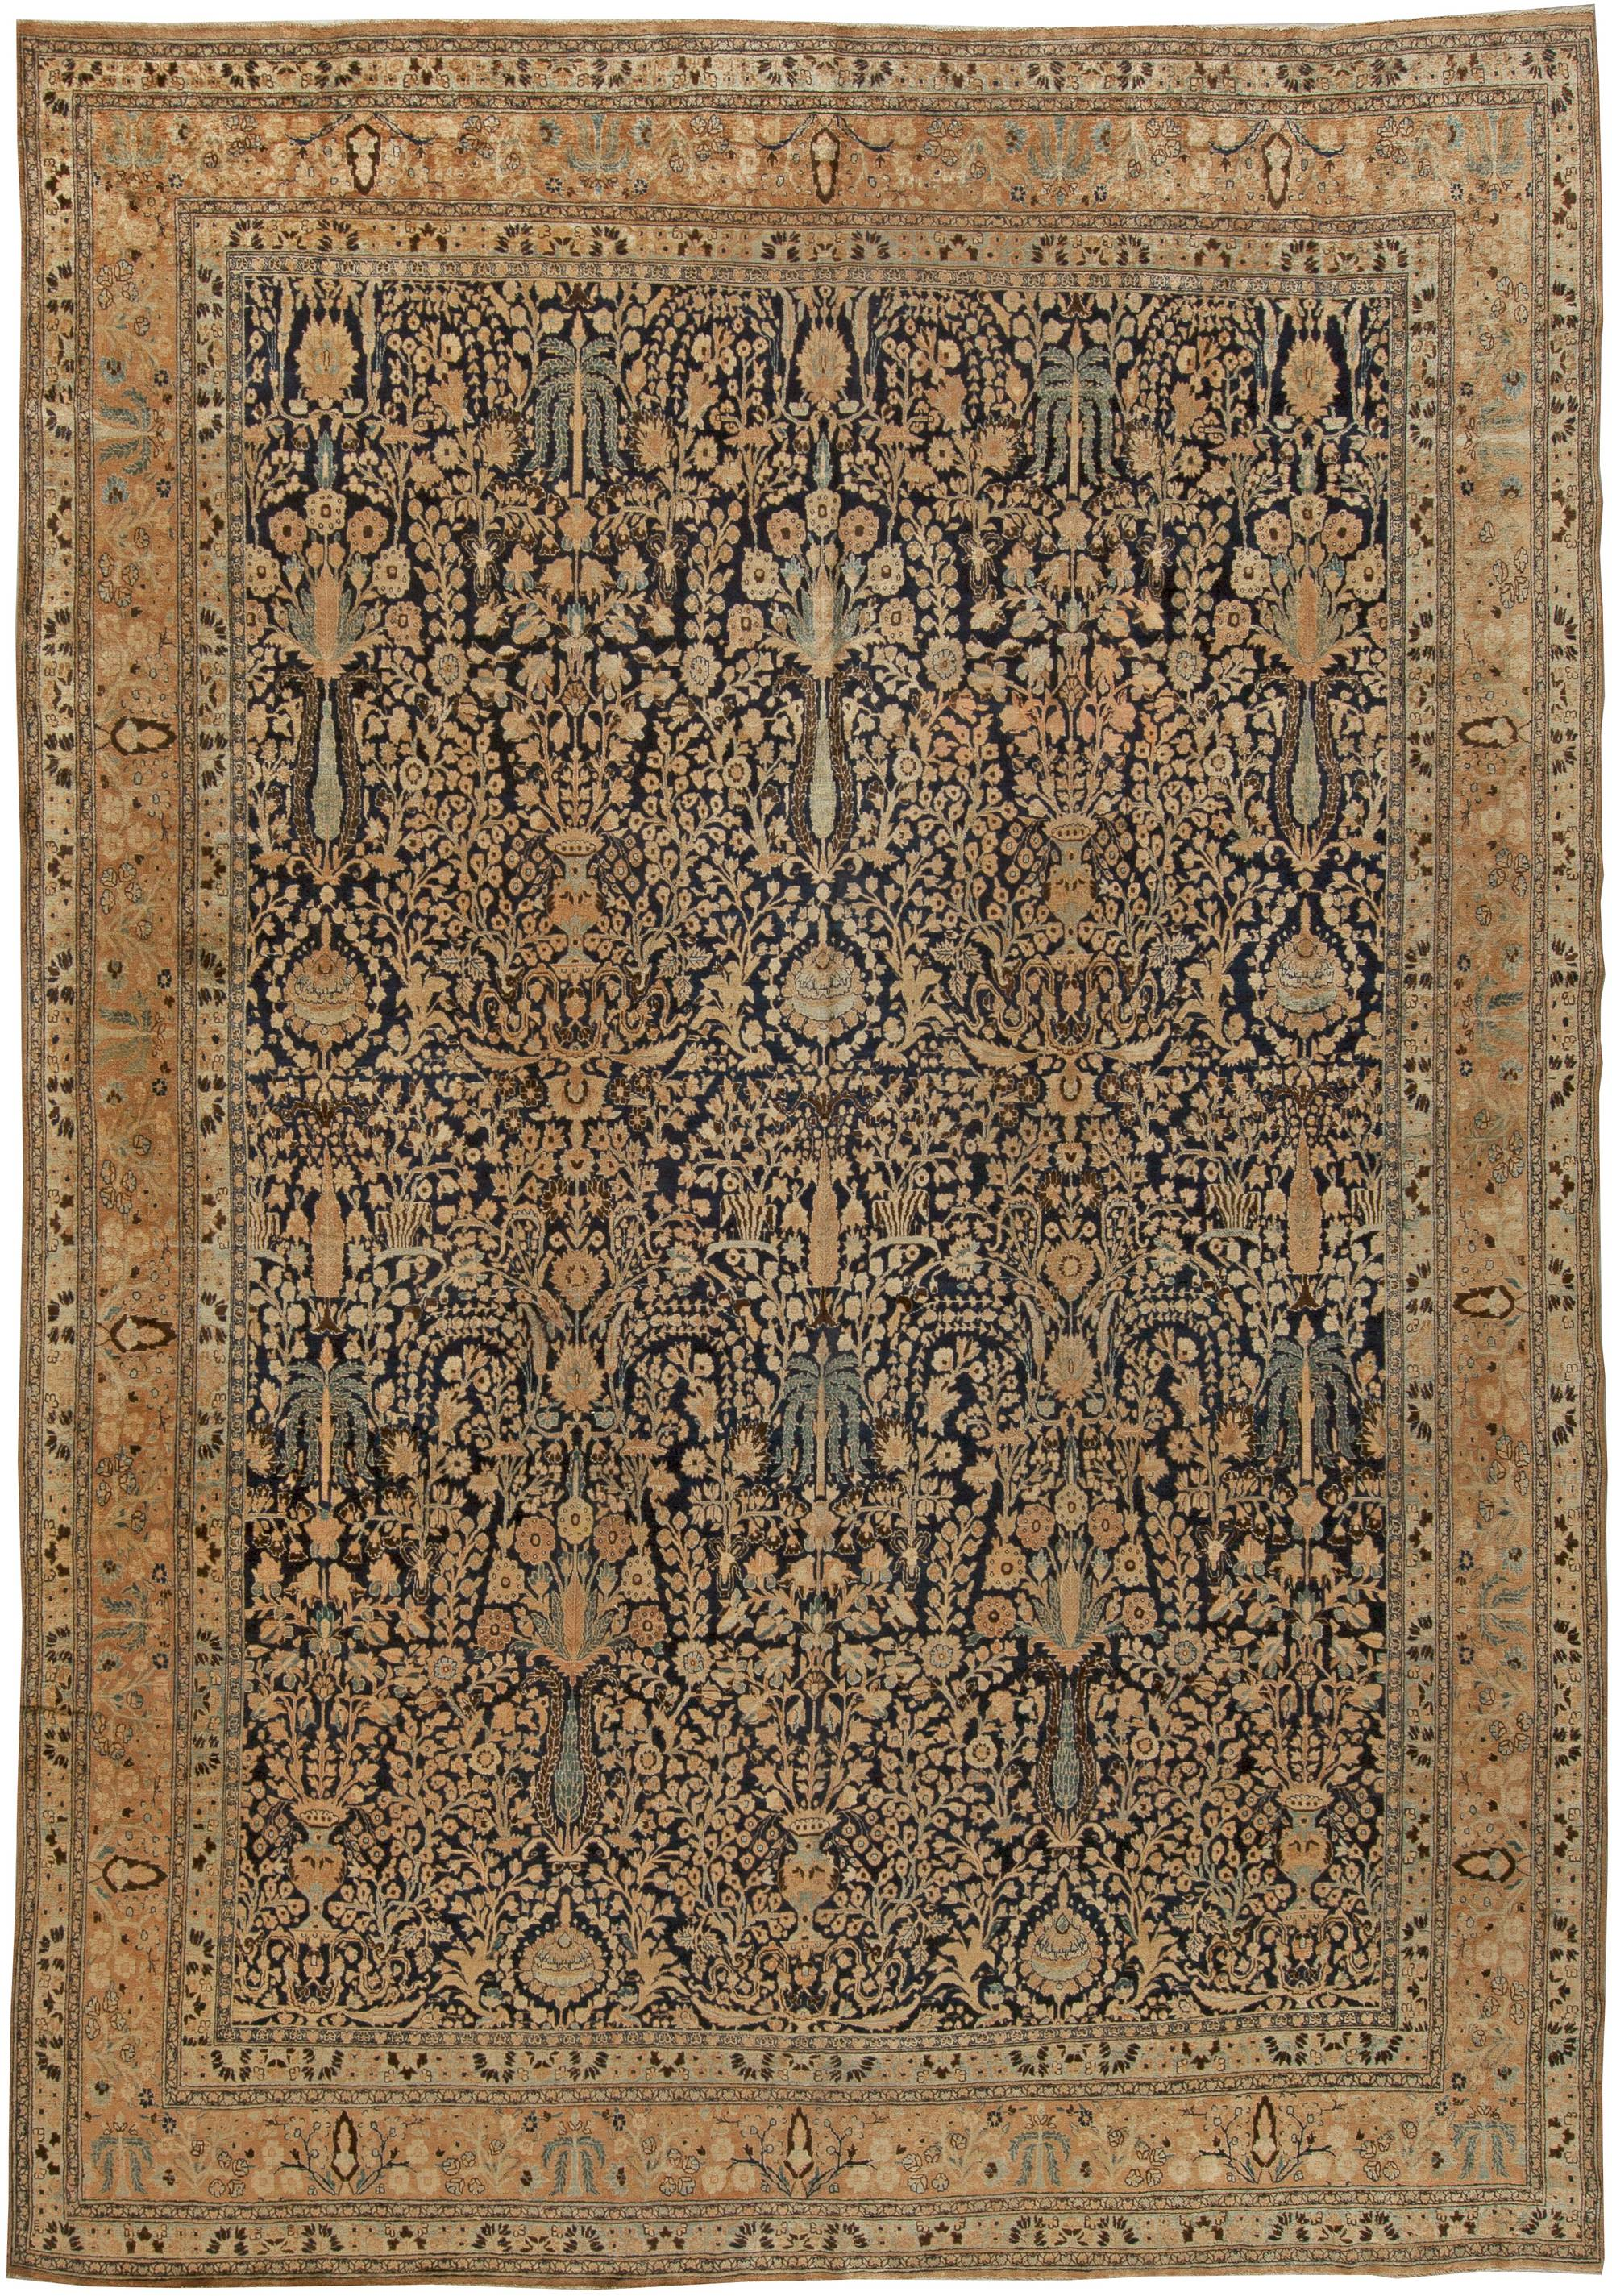 Antique Persian Khorassan Rug Bb5667 By Dlb